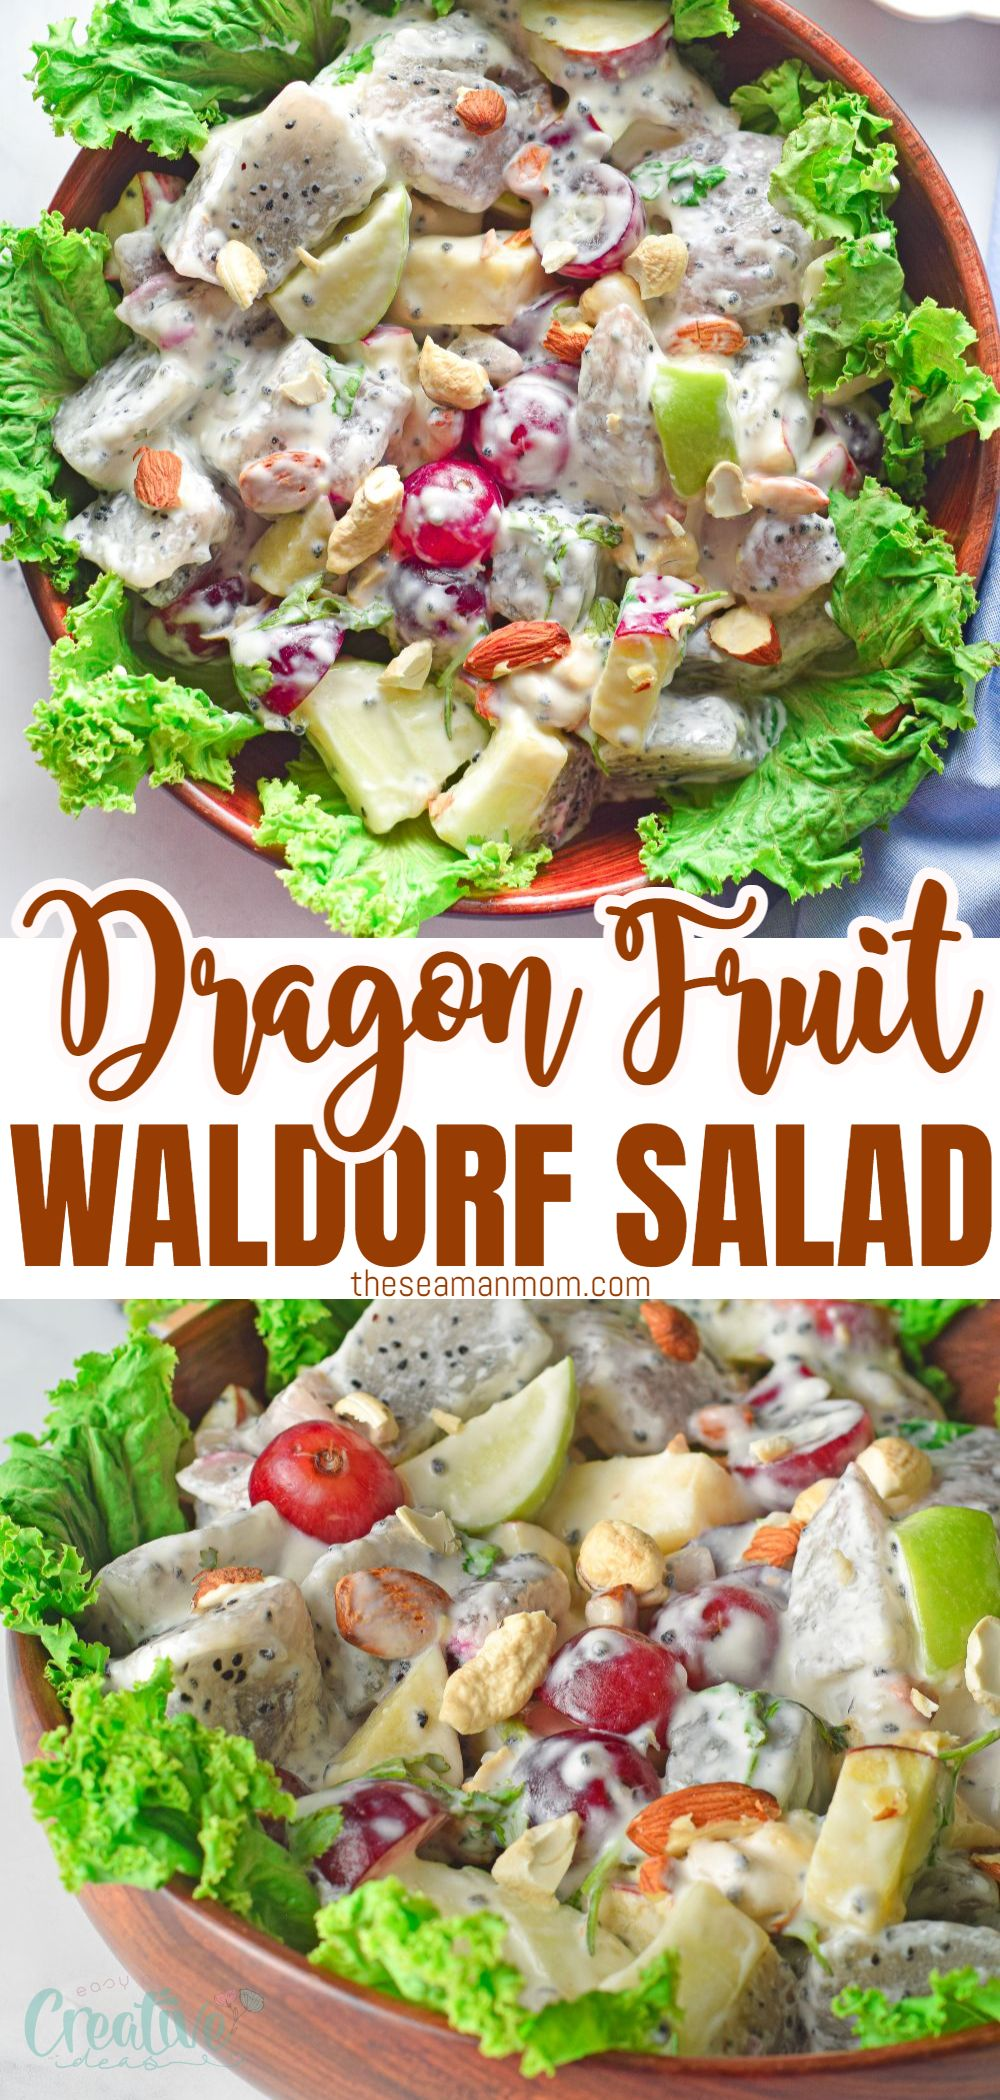 Salads are usually something that we expect as s aside dish with lettuce, tomatoes, and few other extra ingredients that you may enjoy. Let's be fair, they are usually boring affairs and not something many of us would choose as a first option. But salads do not have to be boring and I wanted to share with you this dragon fruit Waldorf salad recipe that will knock your socks off. via @petroneagu